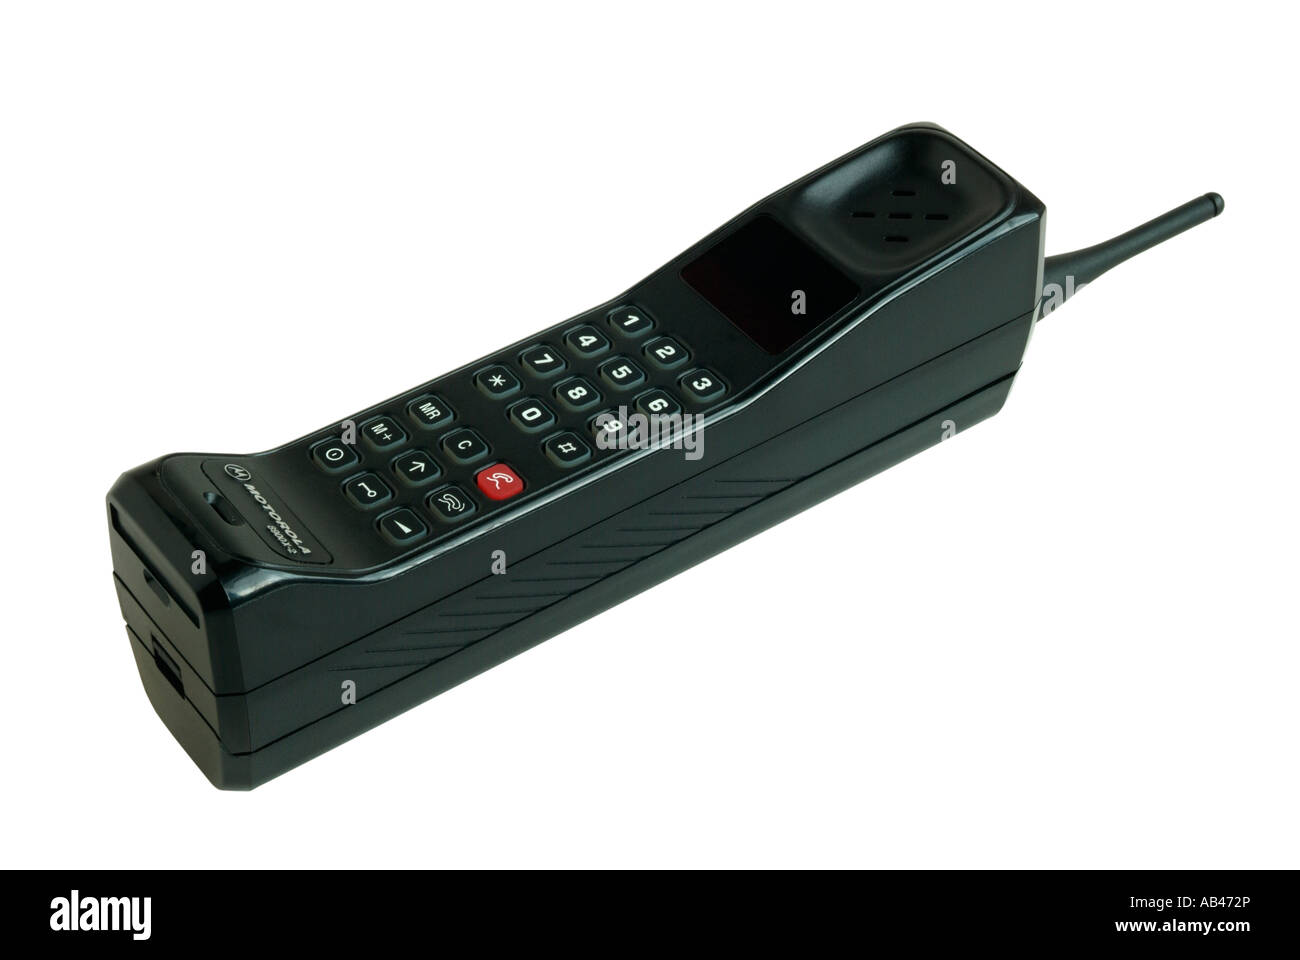 motorola old mobile phones. old fashioned motorola 8900x-2 analogue mobile phone phones a